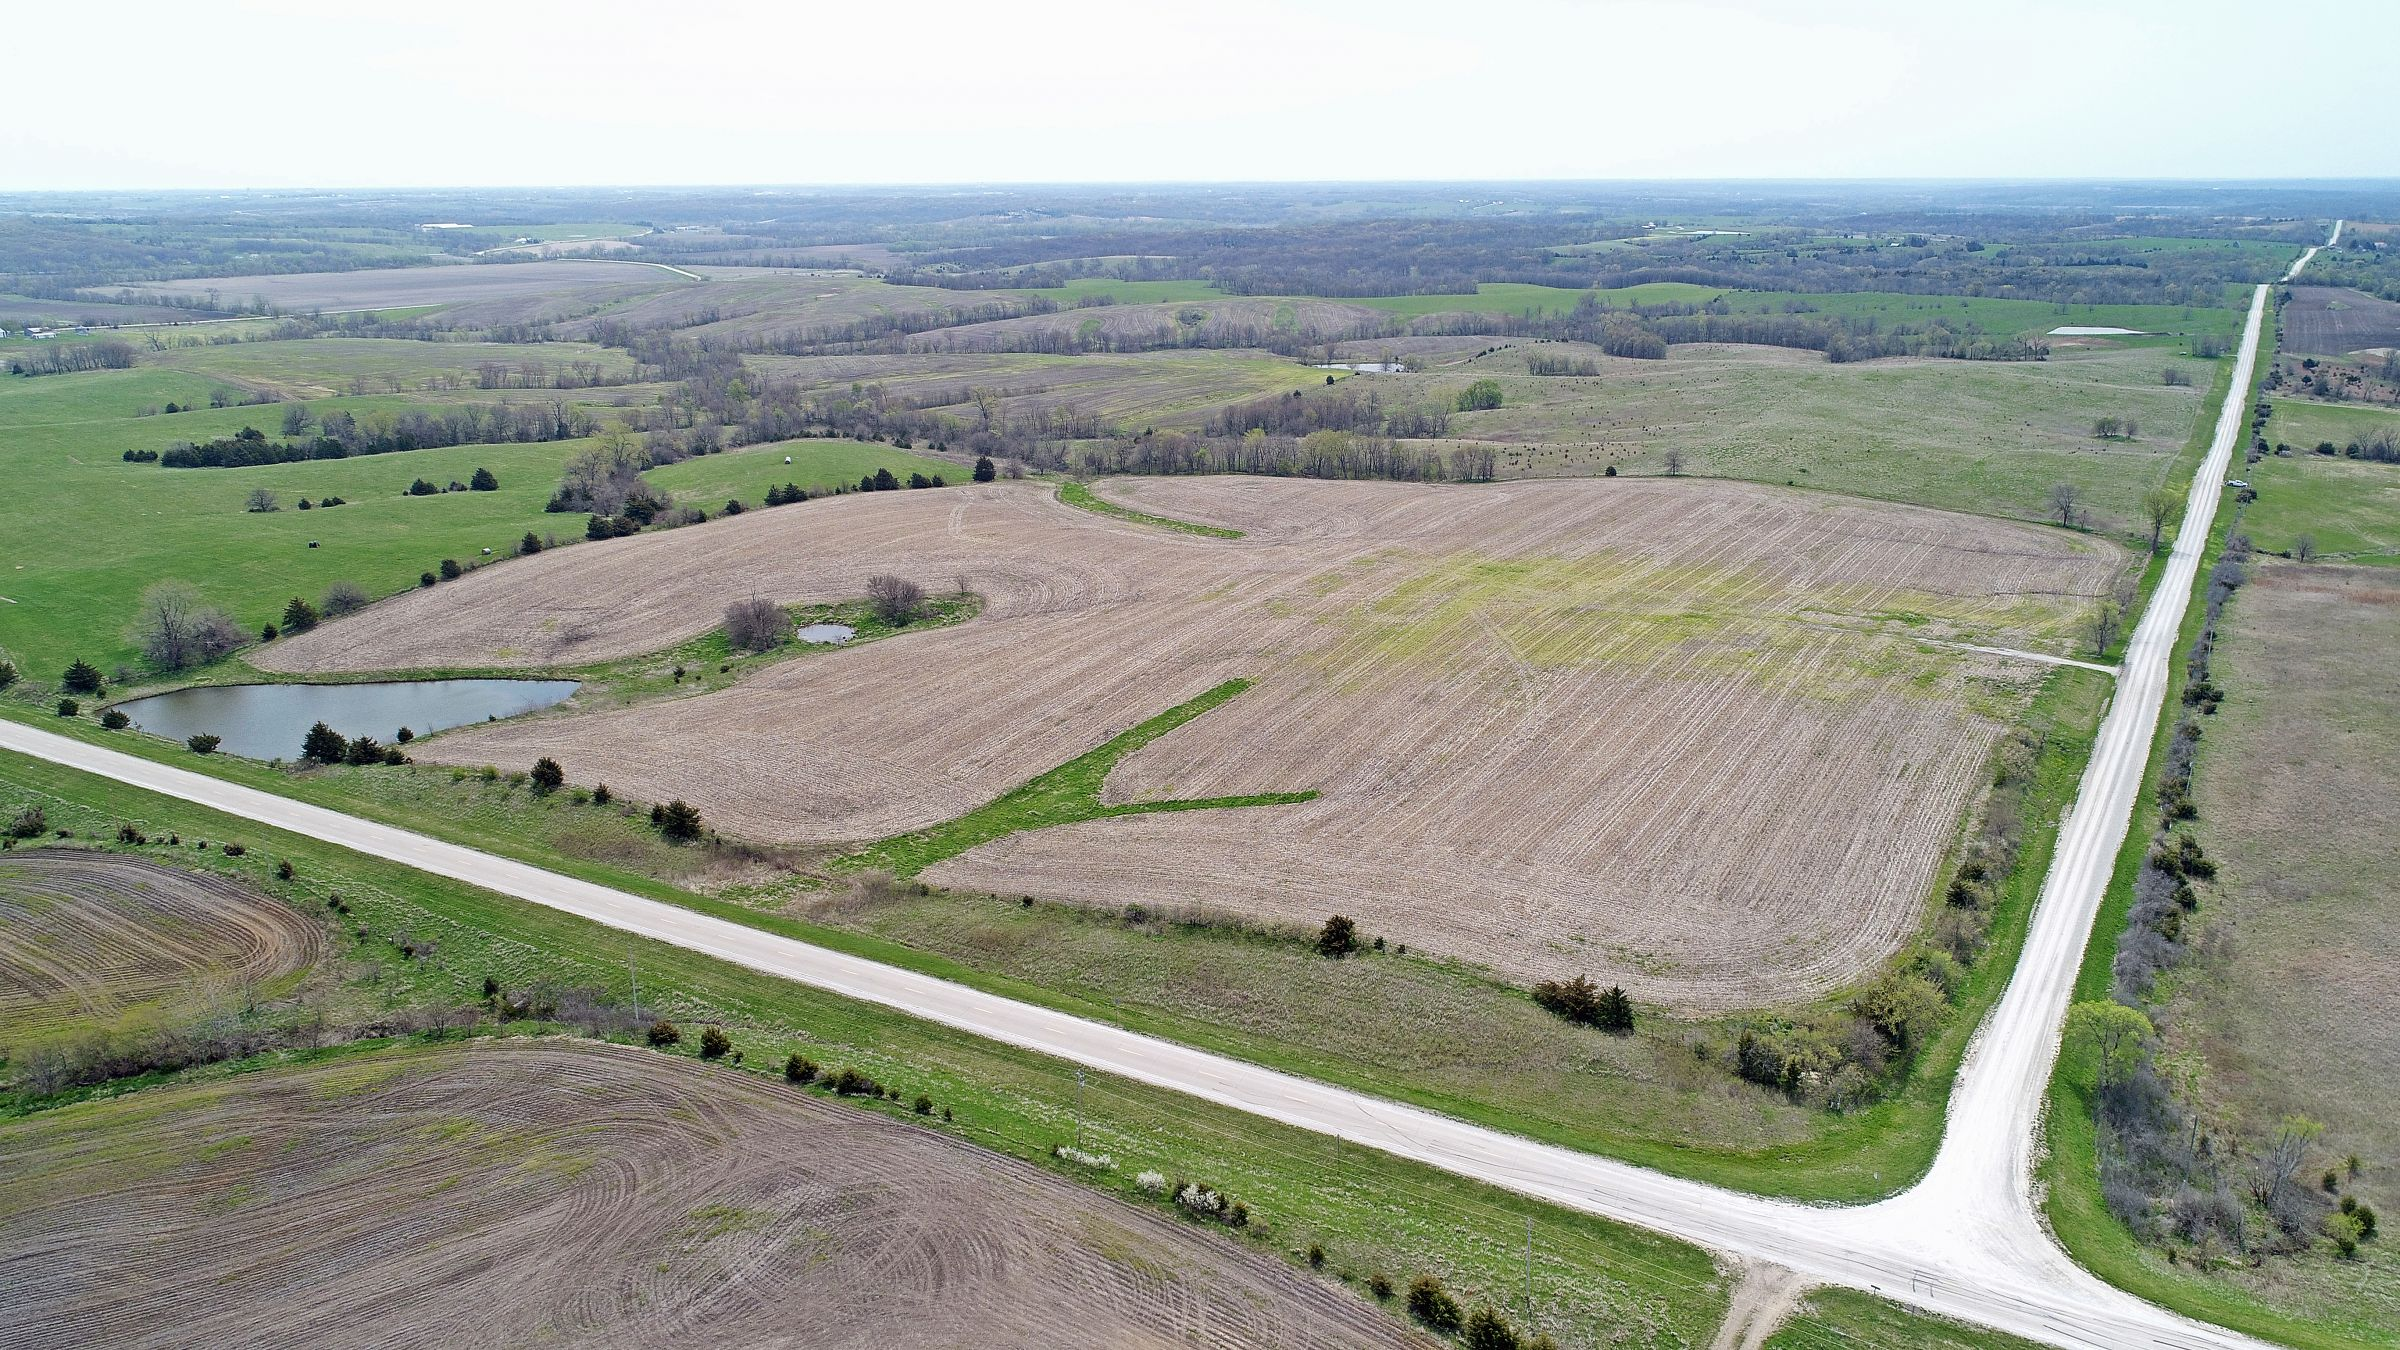 land-decatur-county-iowa-39-acres-listing-number-15495-2-2021-04-27-215005.JPG